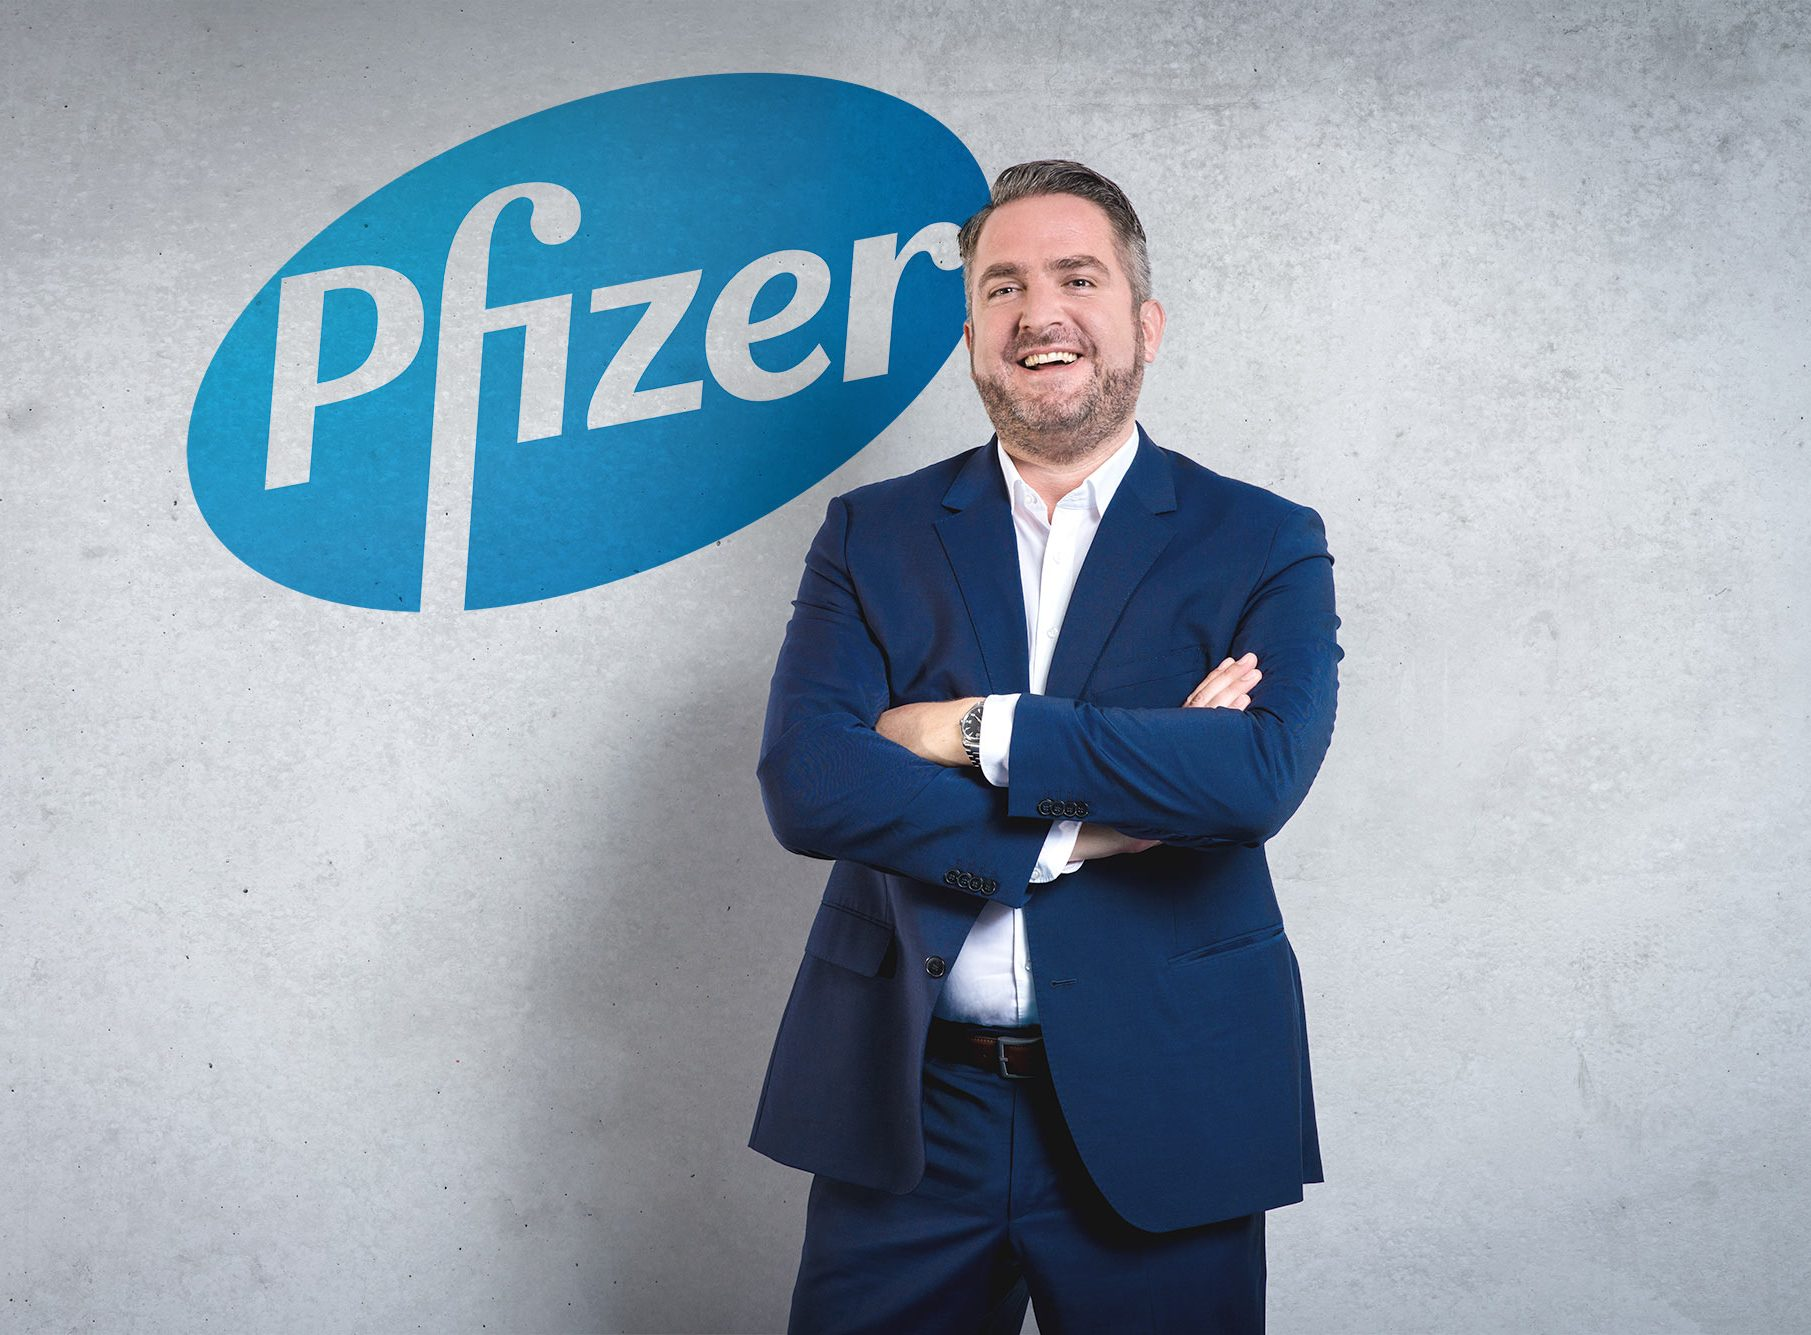 Pfizer Germany Employer Branding Human Resources Campaign Portraits